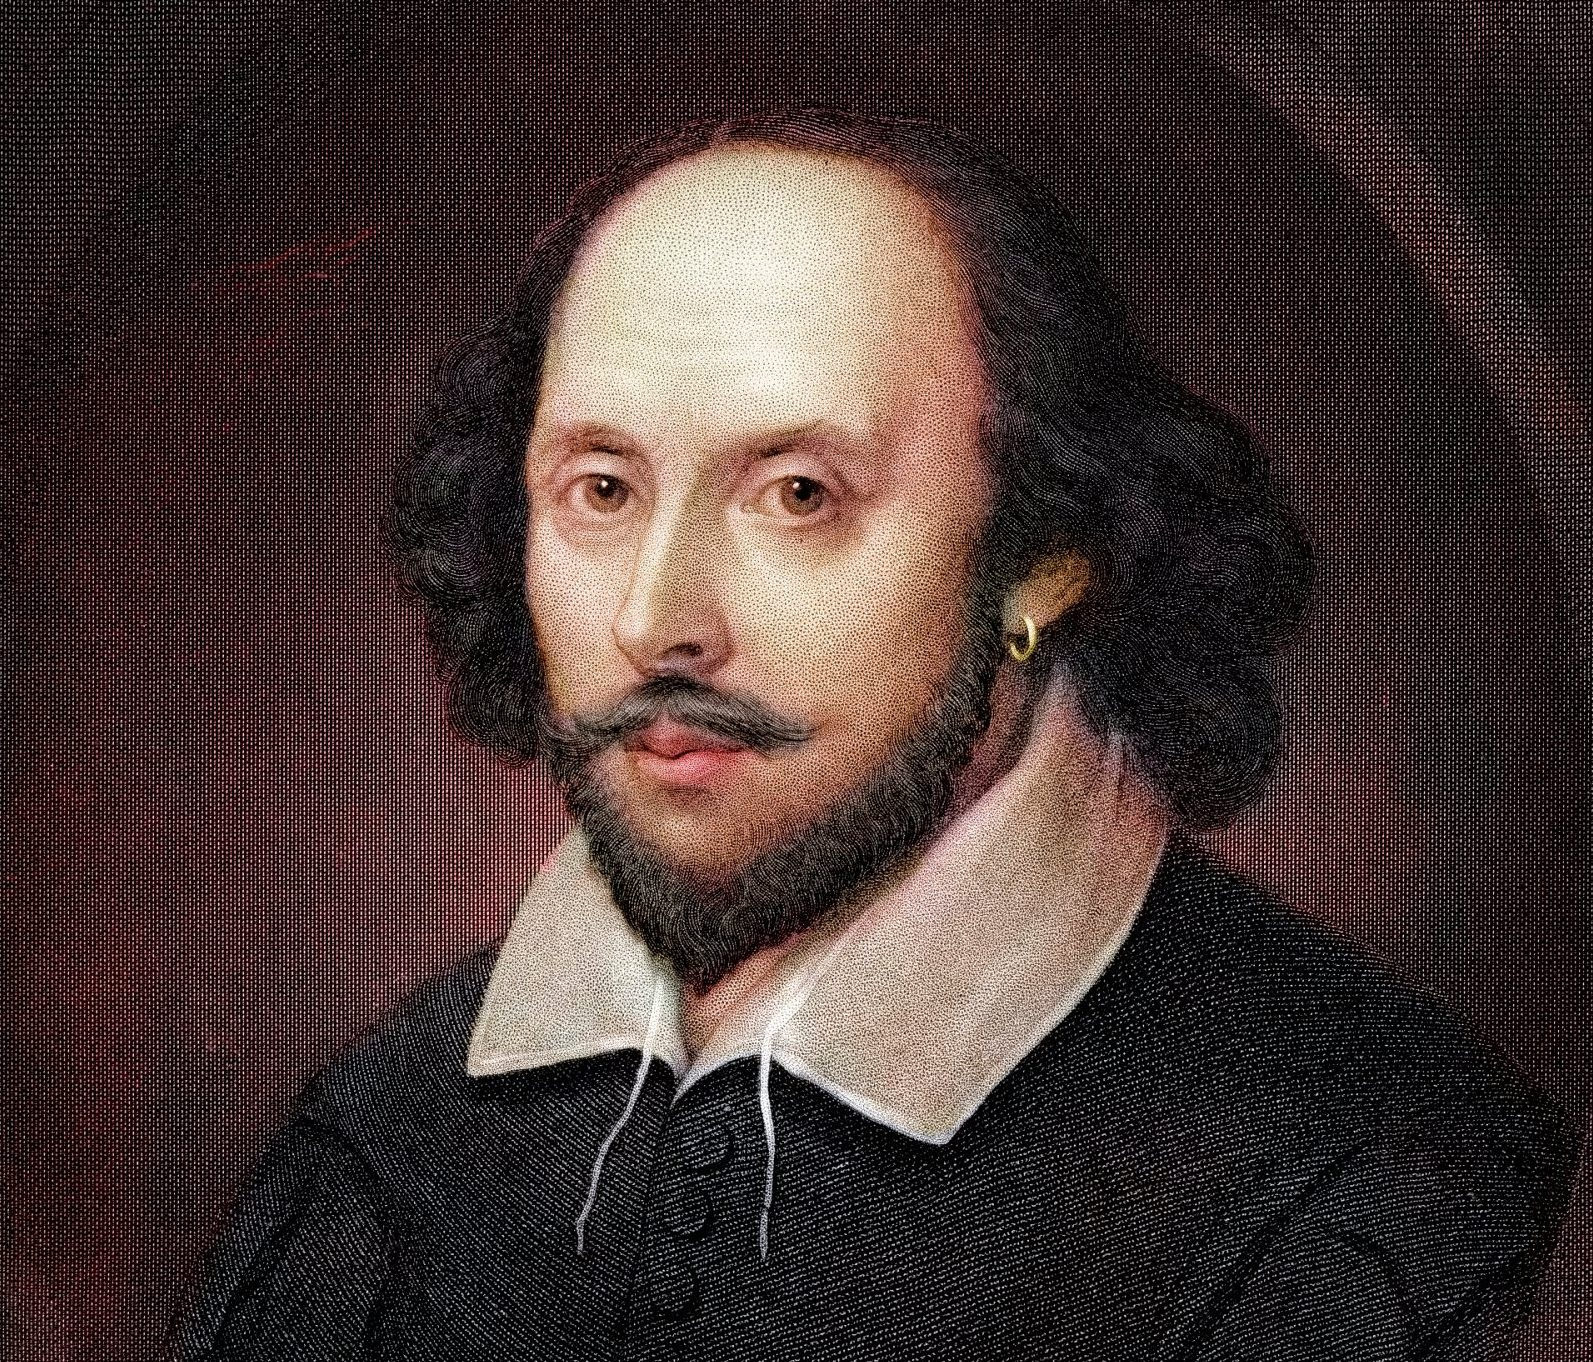 Street where Shakespeare lived when he wrote Romeo and Juliet 'finally discovered'